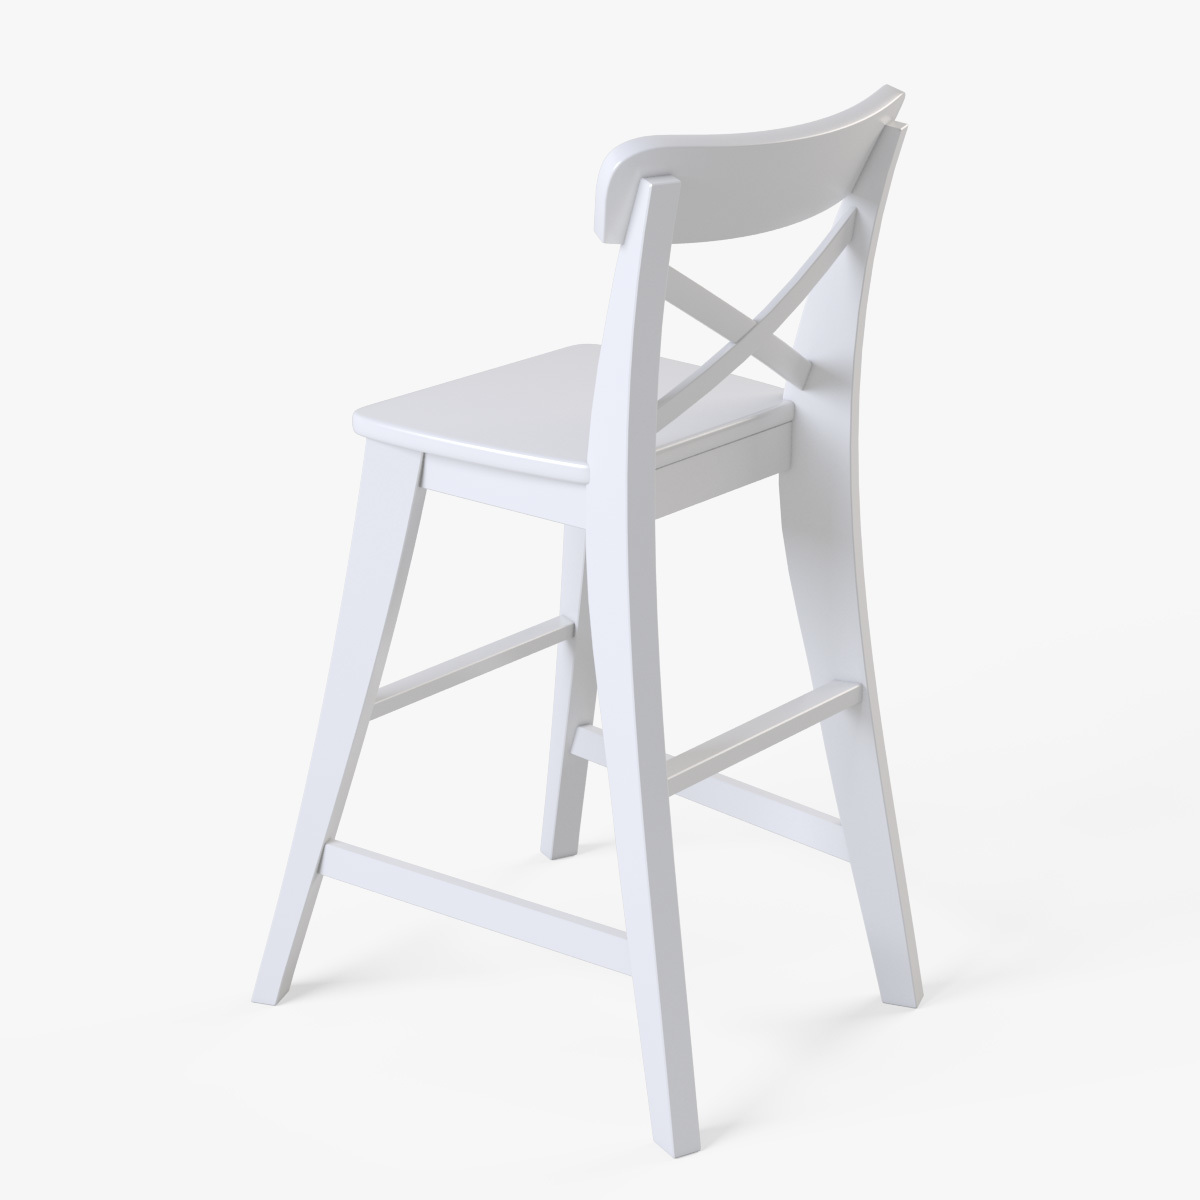 ikea junior chair chairs sitting area crossword ingolf white by markelos 3docean